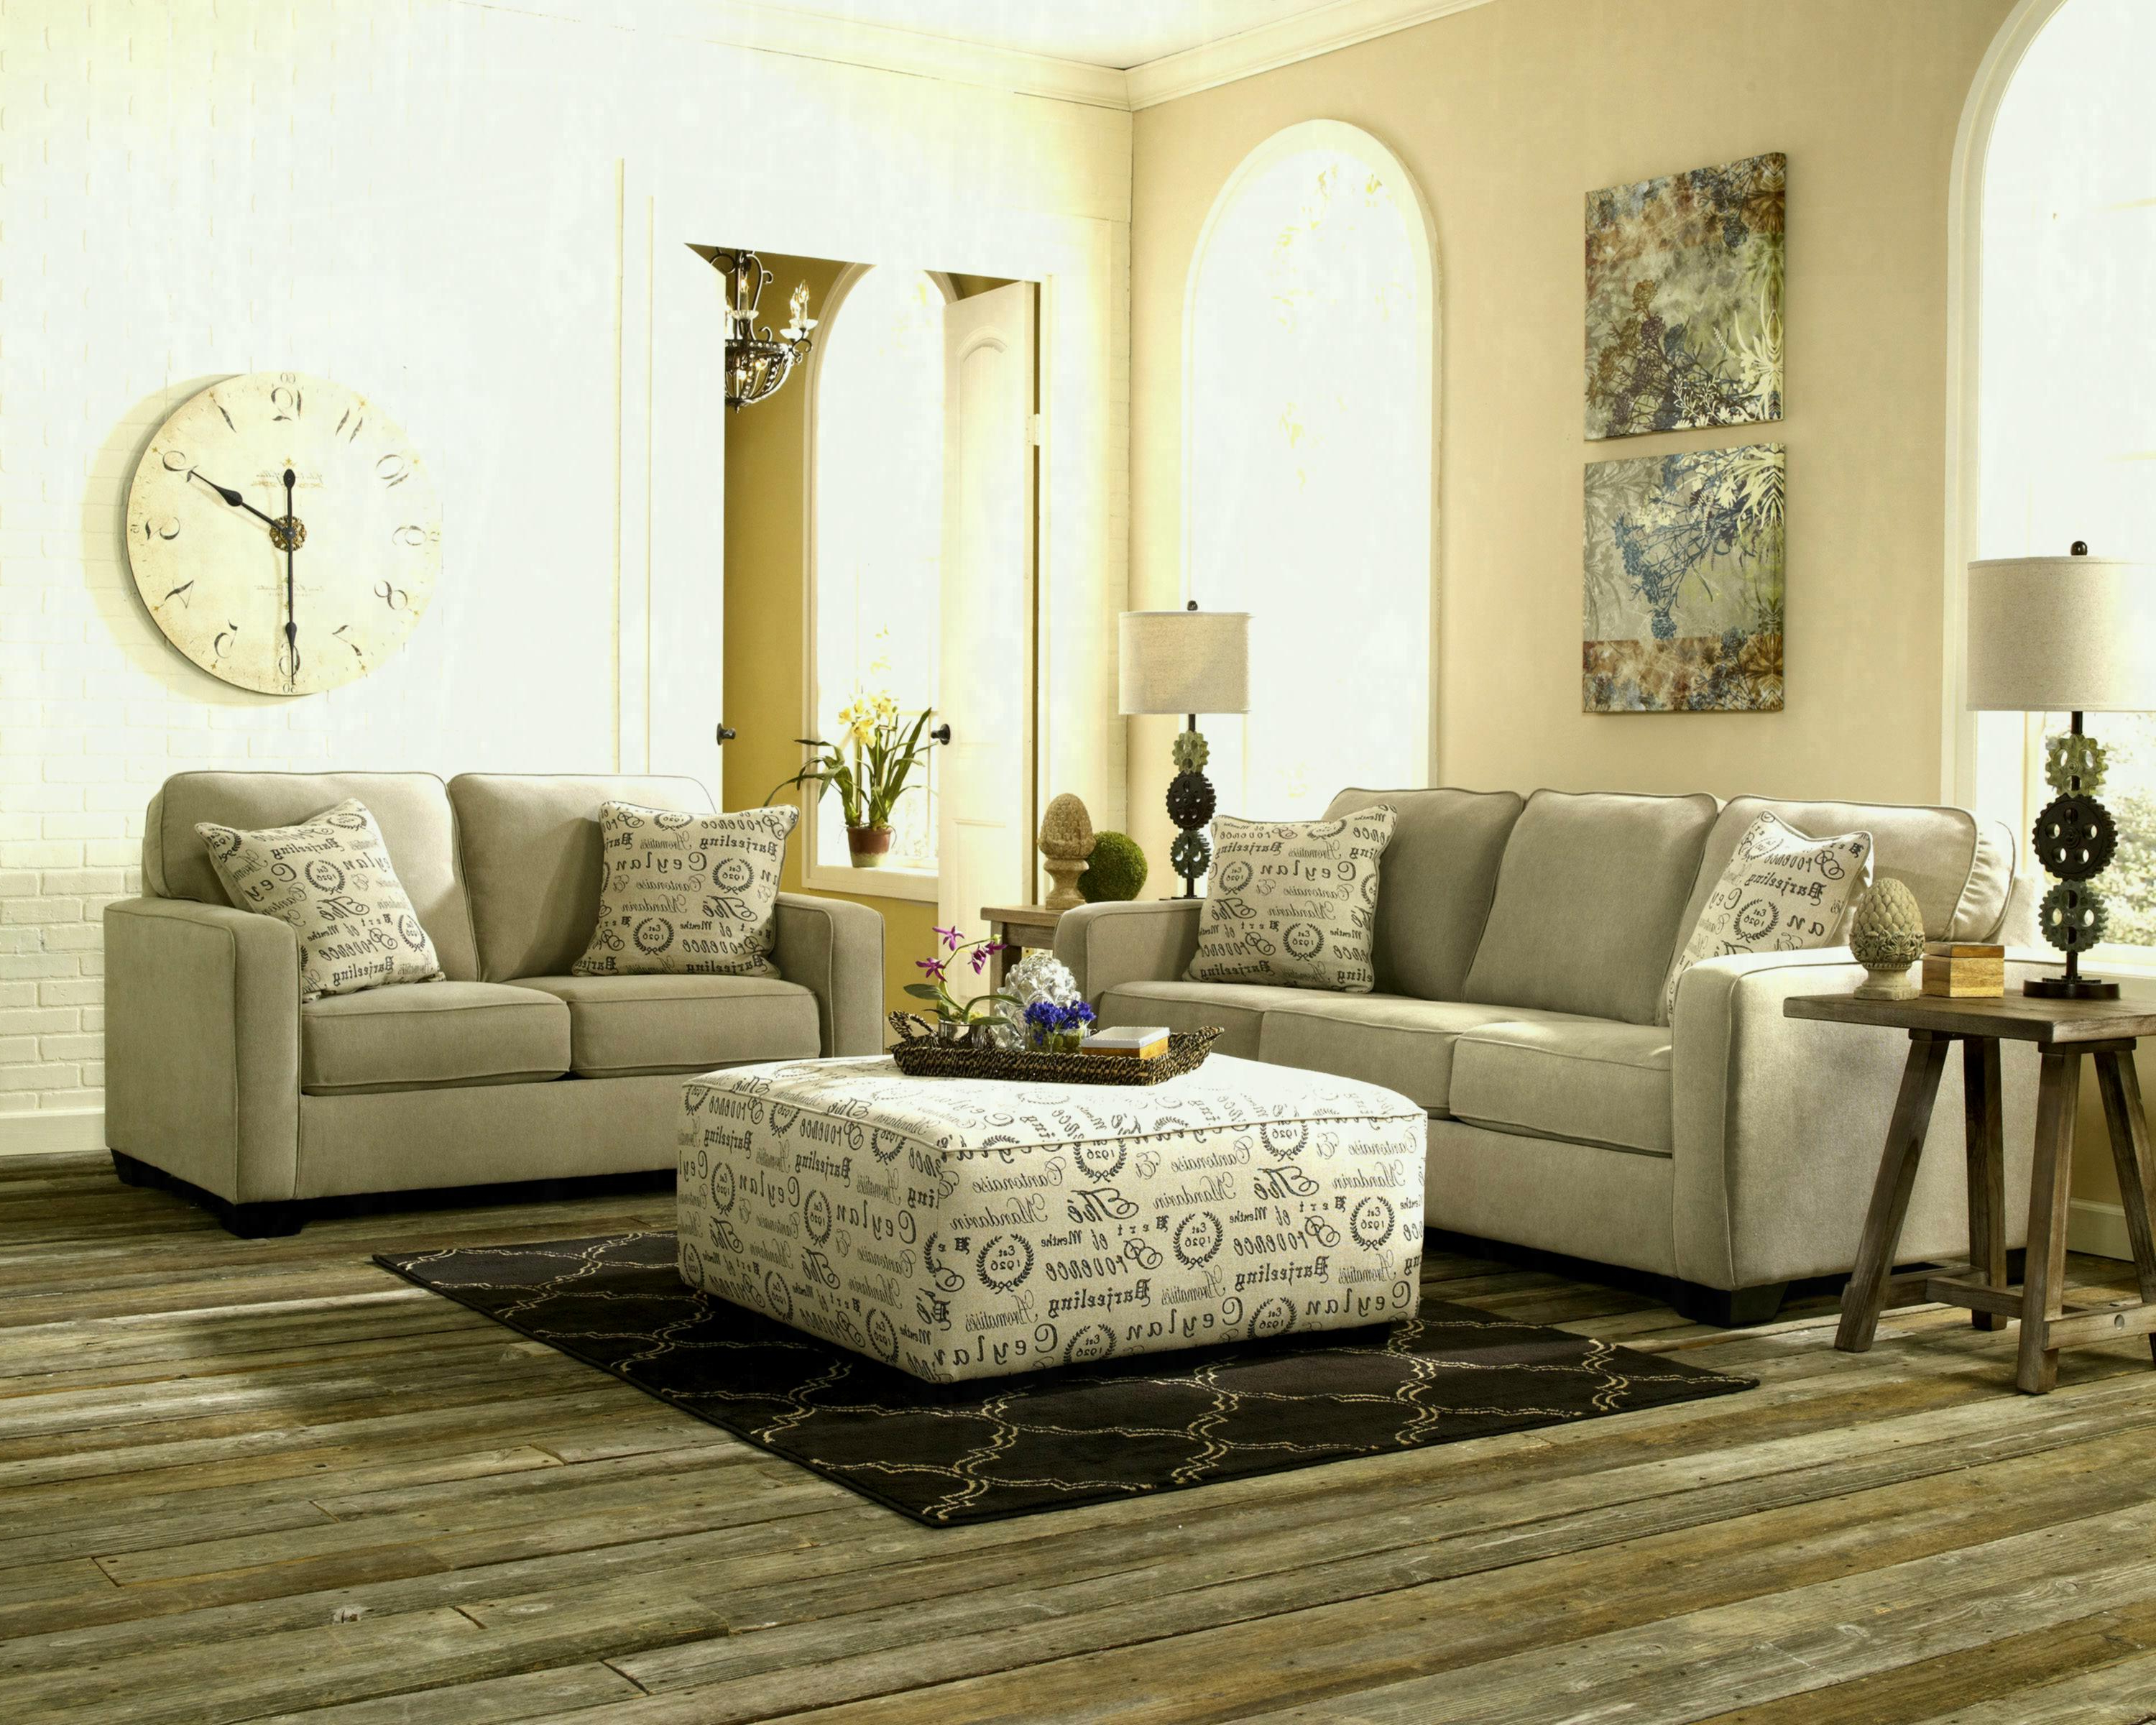 Well Known Added To Cart Aquarius Light Grey Piece Sectional W Raf Chaise Intended For Aquarius Light Grey 2 Piece Sectionals With Laf Chaise (View 20 of 20)